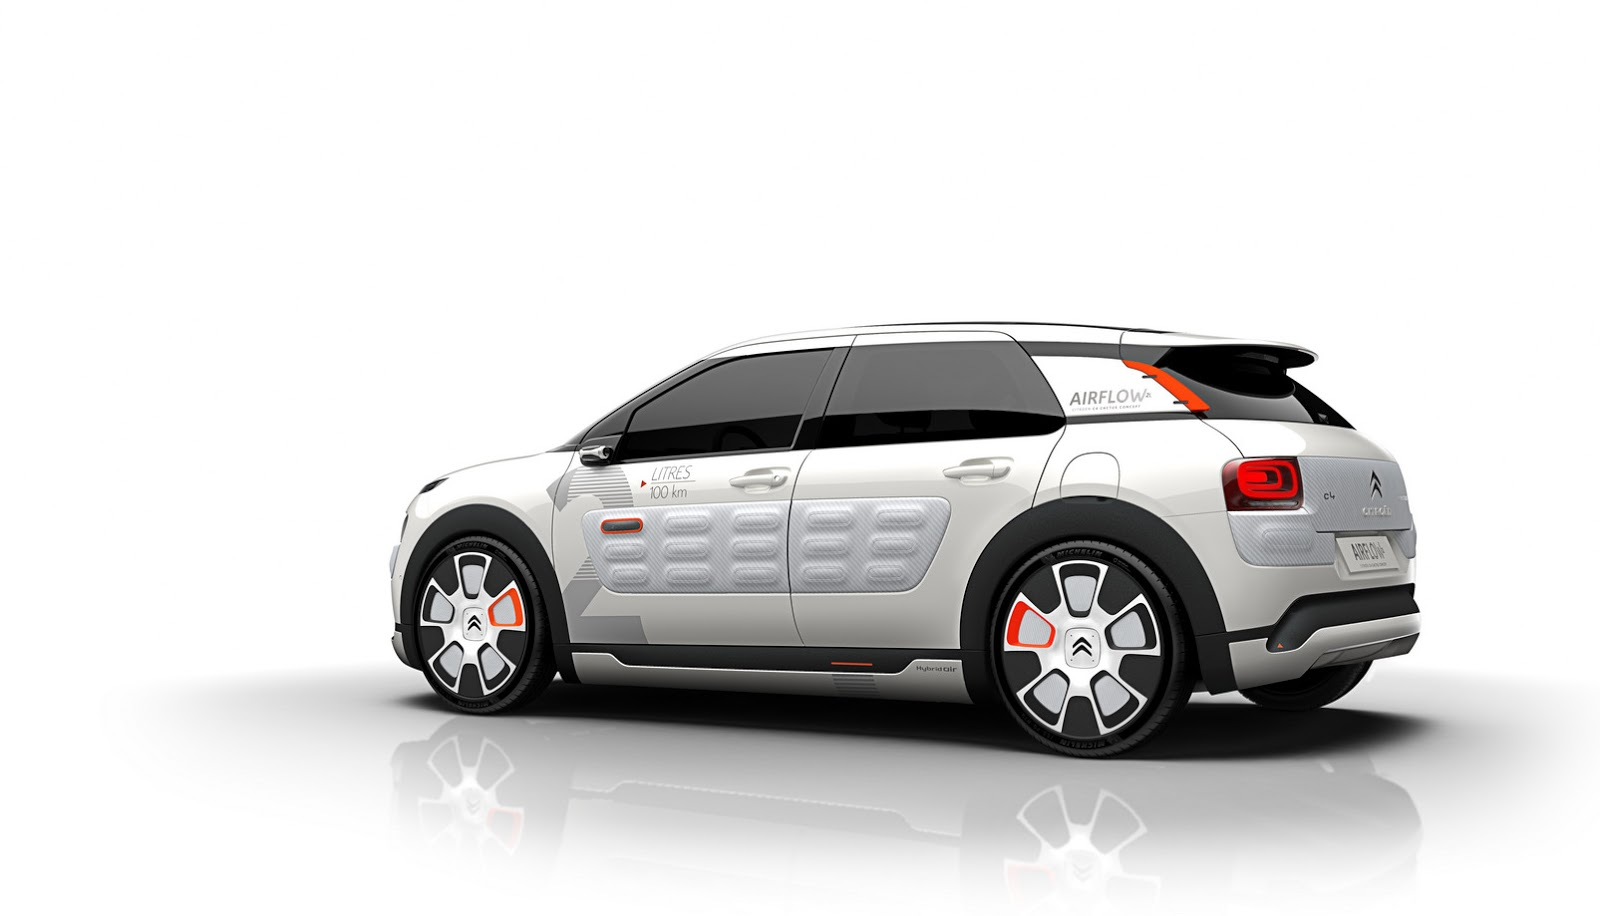 new citroen c4 cactus airflow 2l concept gets 2l 100km or 141mpg carscoops. Black Bedroom Furniture Sets. Home Design Ideas